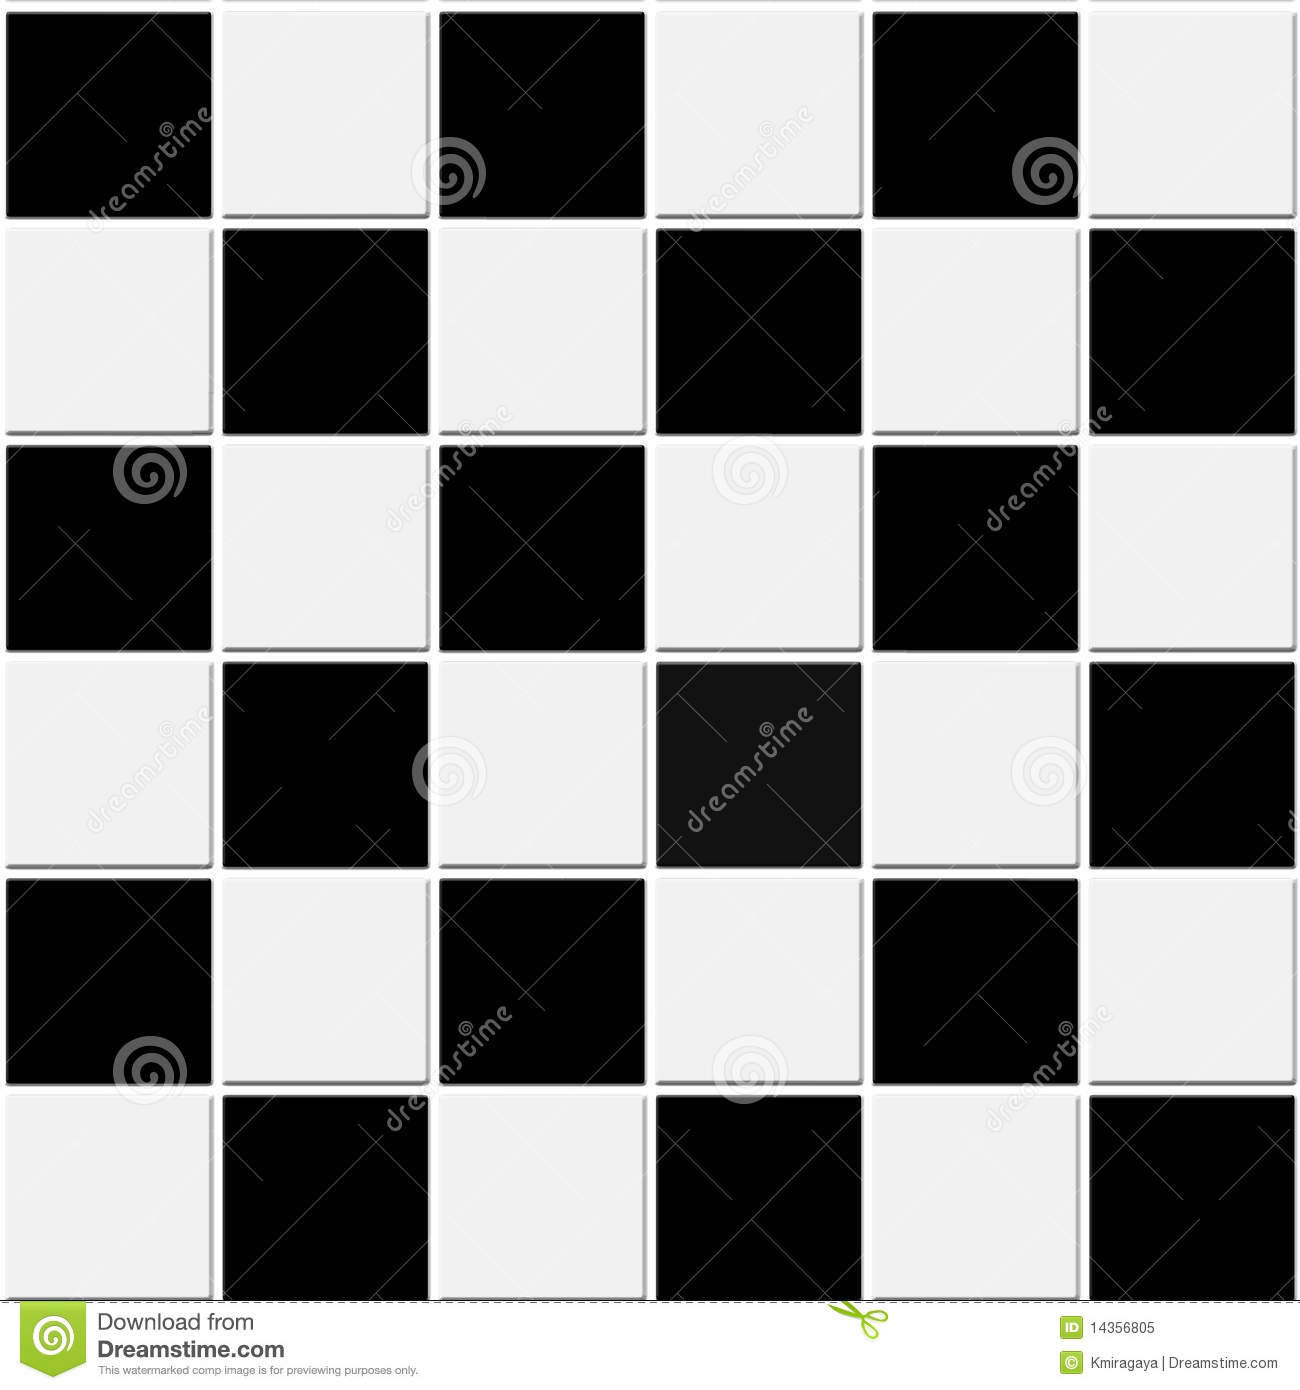 vasarely_2_0 Black And White Checkered Kitchen Rug